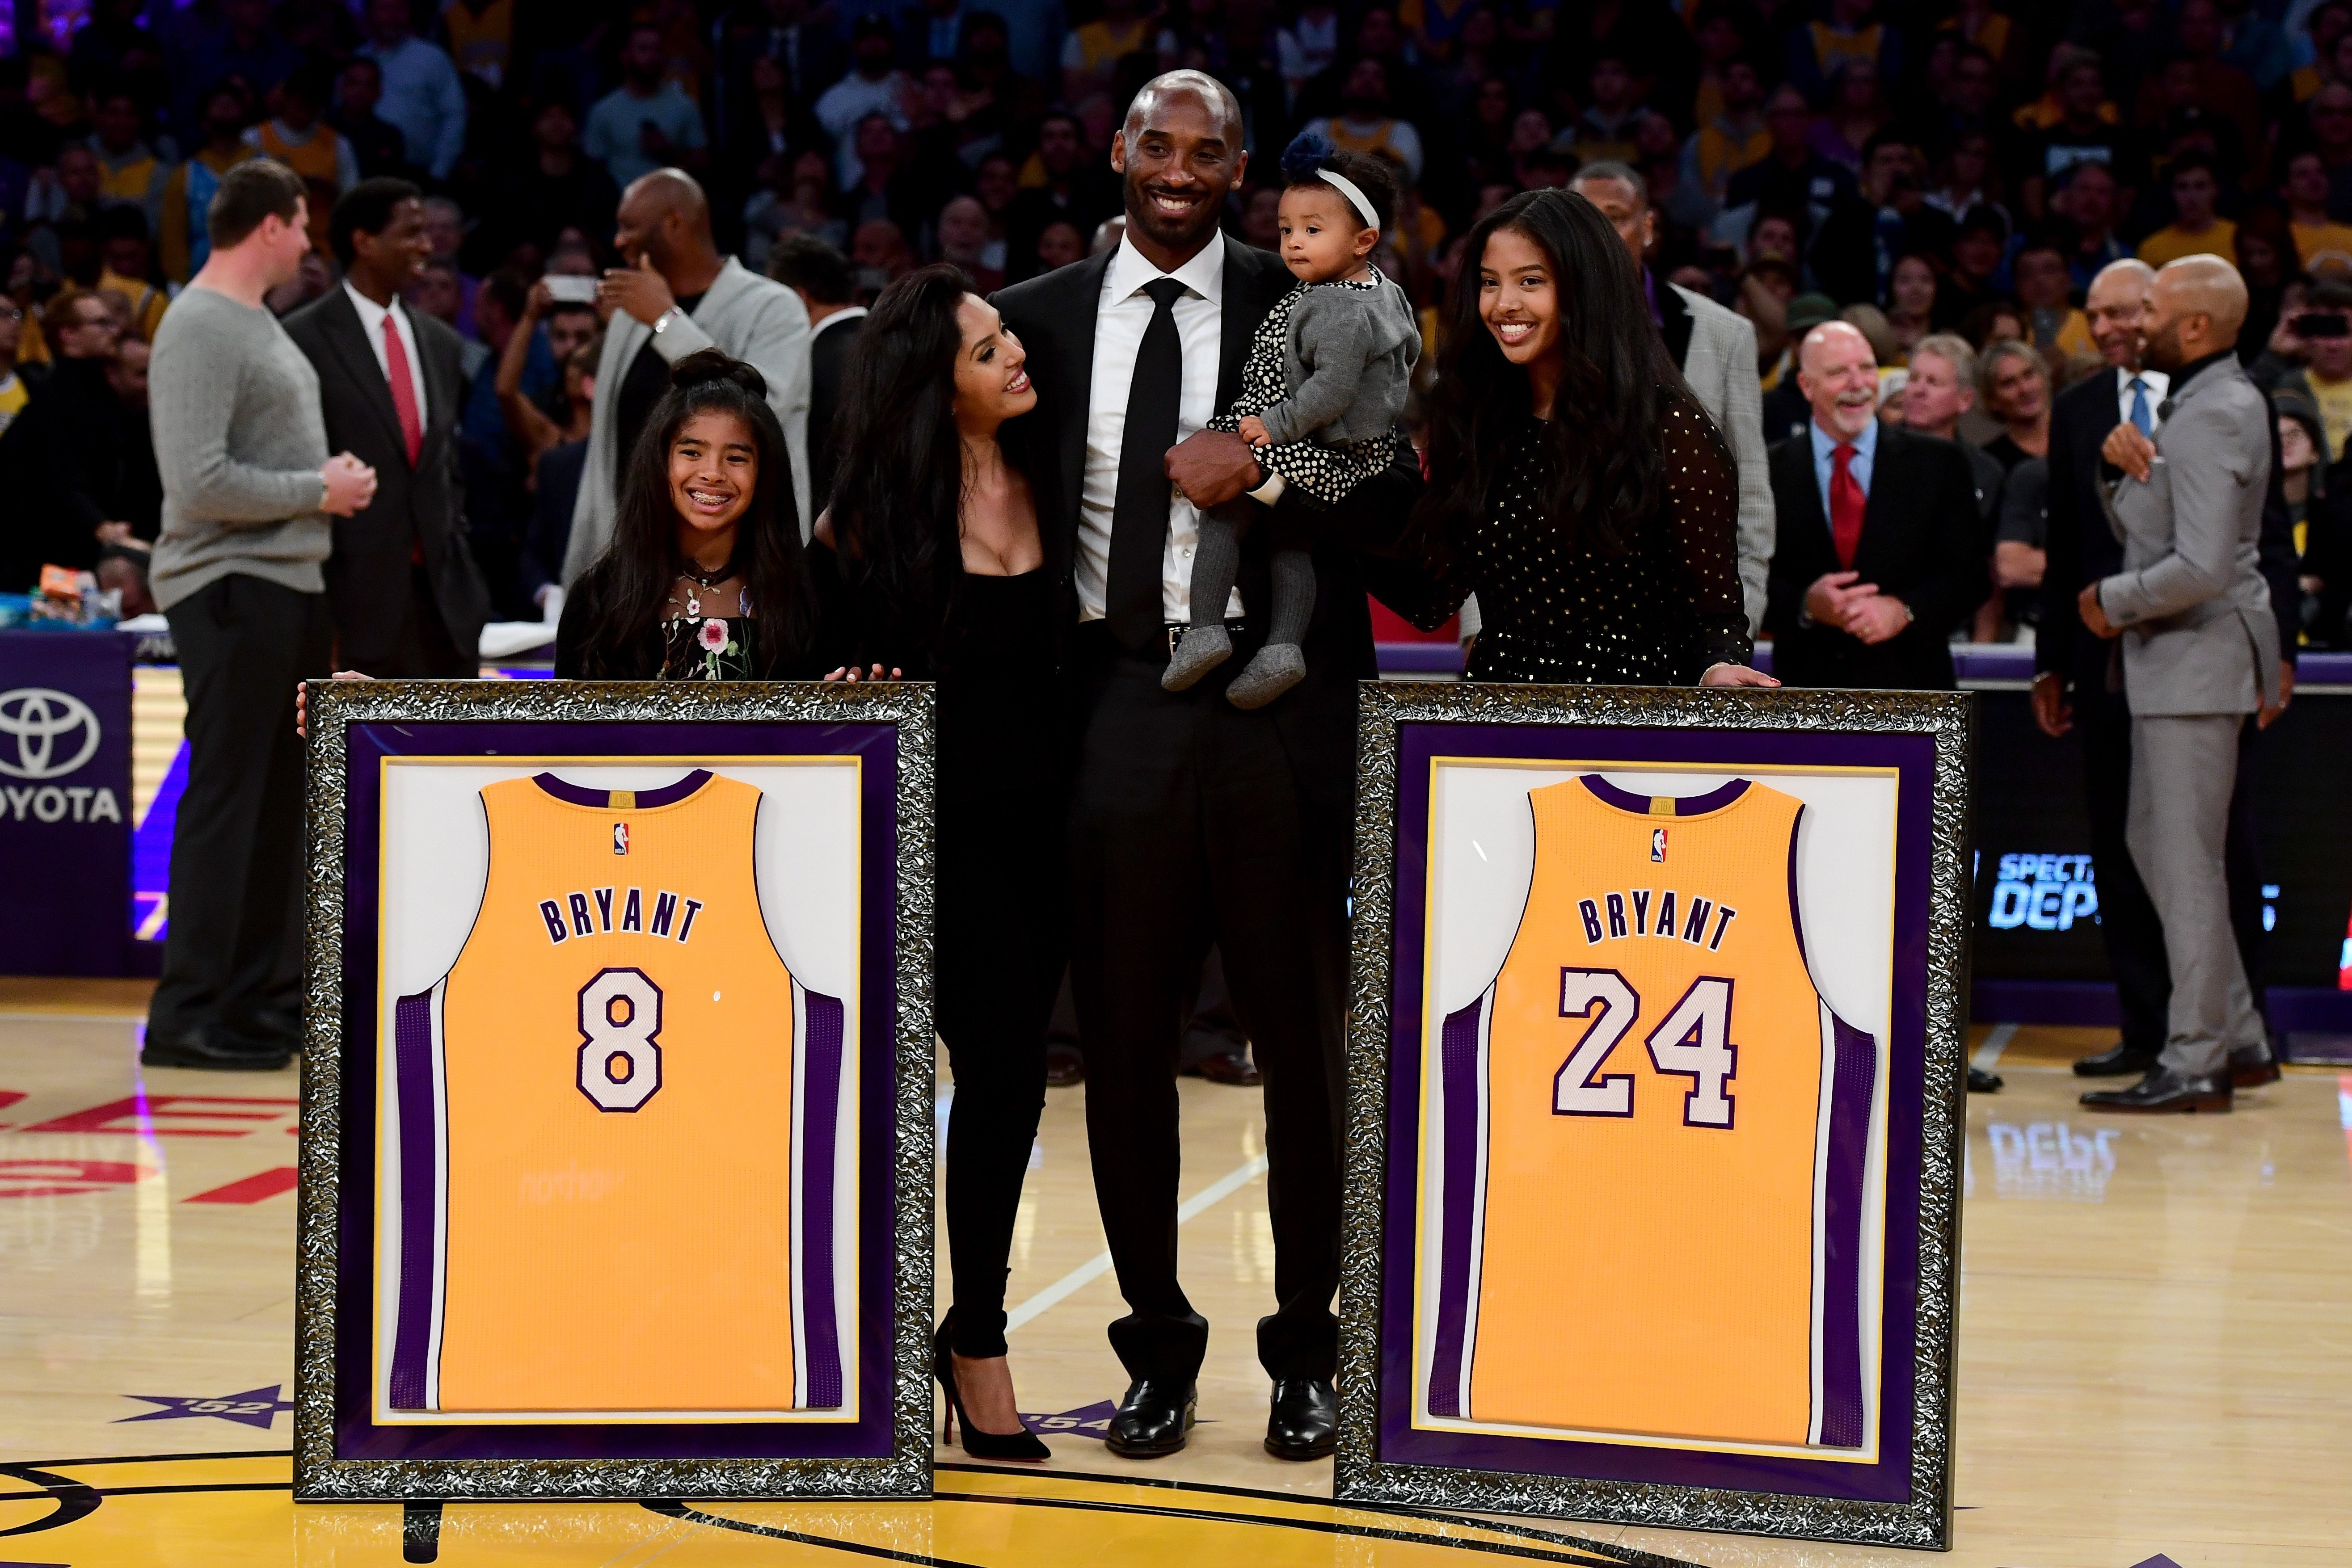 Kobe Bryant poses with his family after both his #8 and #24 Los Angeles Lakers jerseys are retired at Staples Center on Dec. 18, 2017 in California | Photo: Getty Images